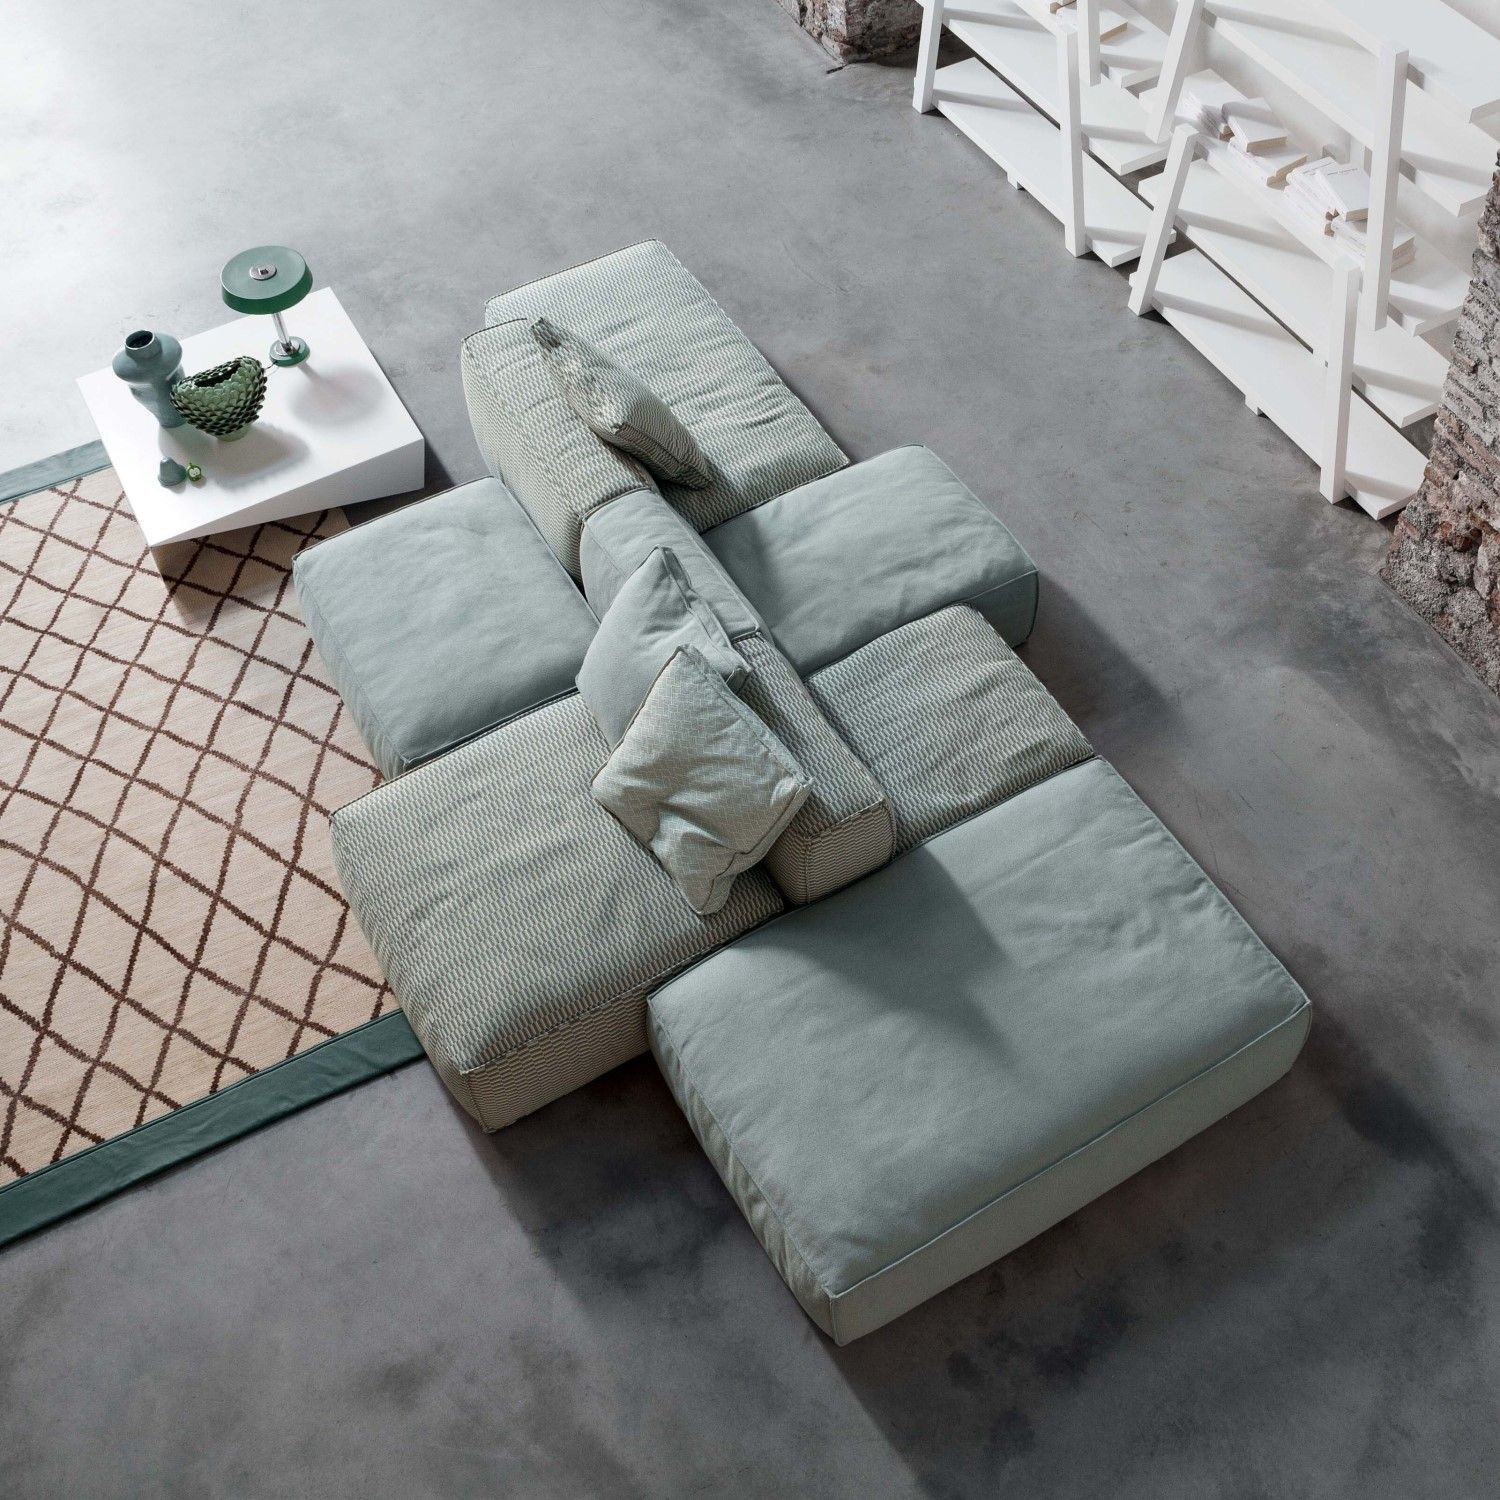 Jan s New Elements by Paola Navone